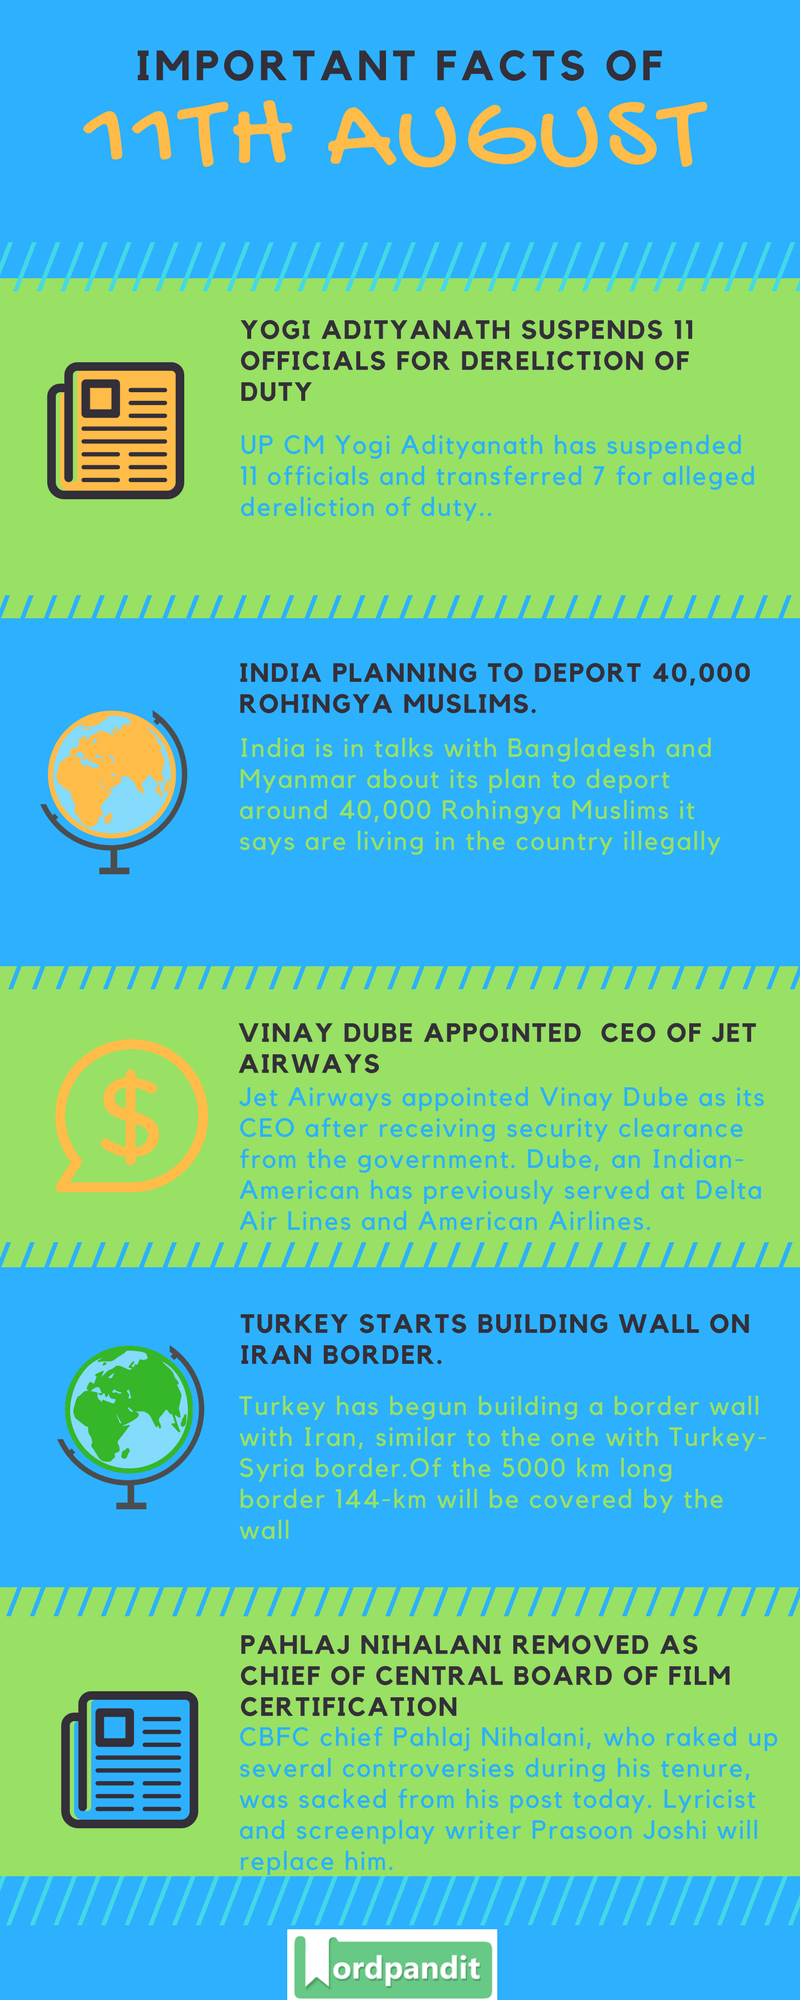 Daily-Current-Affairs-11-august-2017-Current-Affairs-Quiz-august-11-2017-Current-Affairs-Infographic